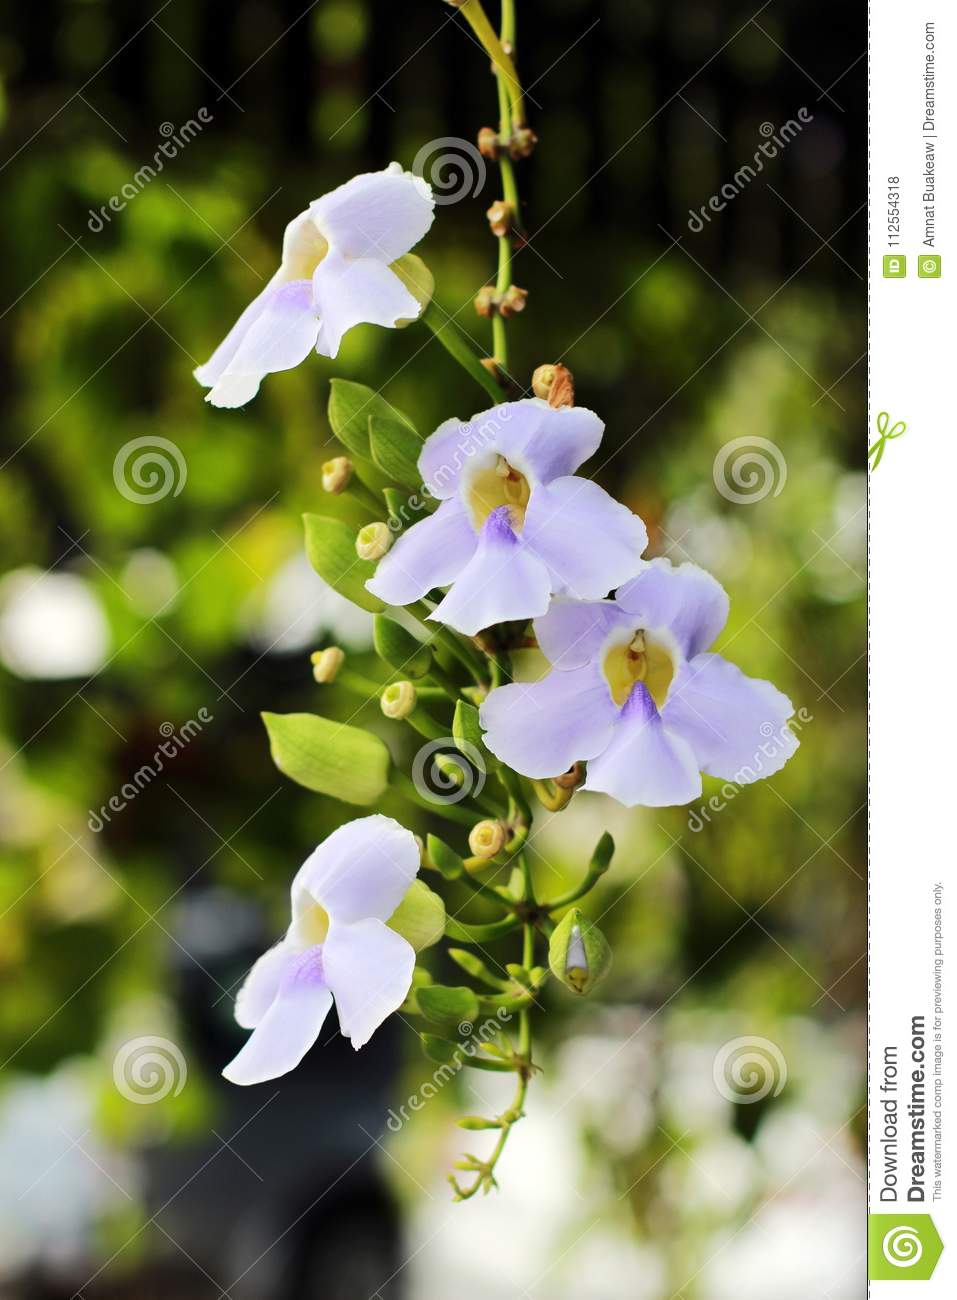 Flowers Vine White Purple With Bushy Beautiful On Soft And Blur